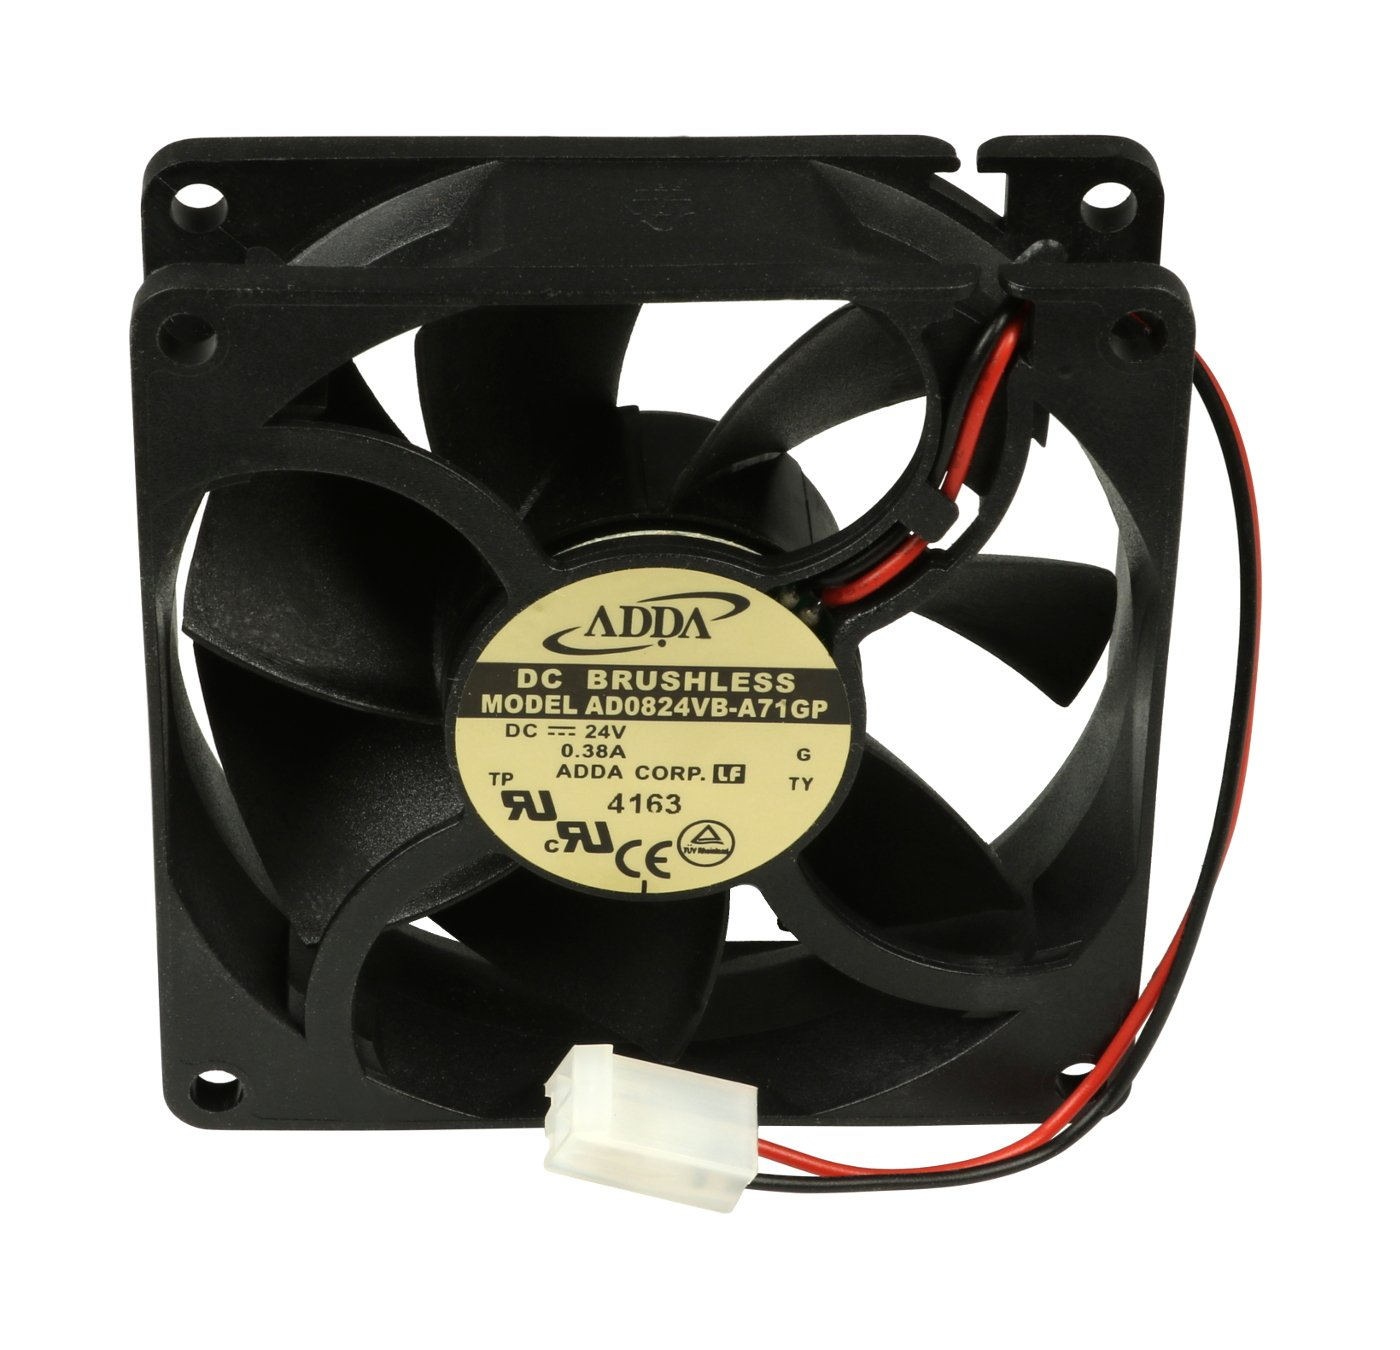 Crest 30907833 Fan Assembly for CA6 and CA9 30907833